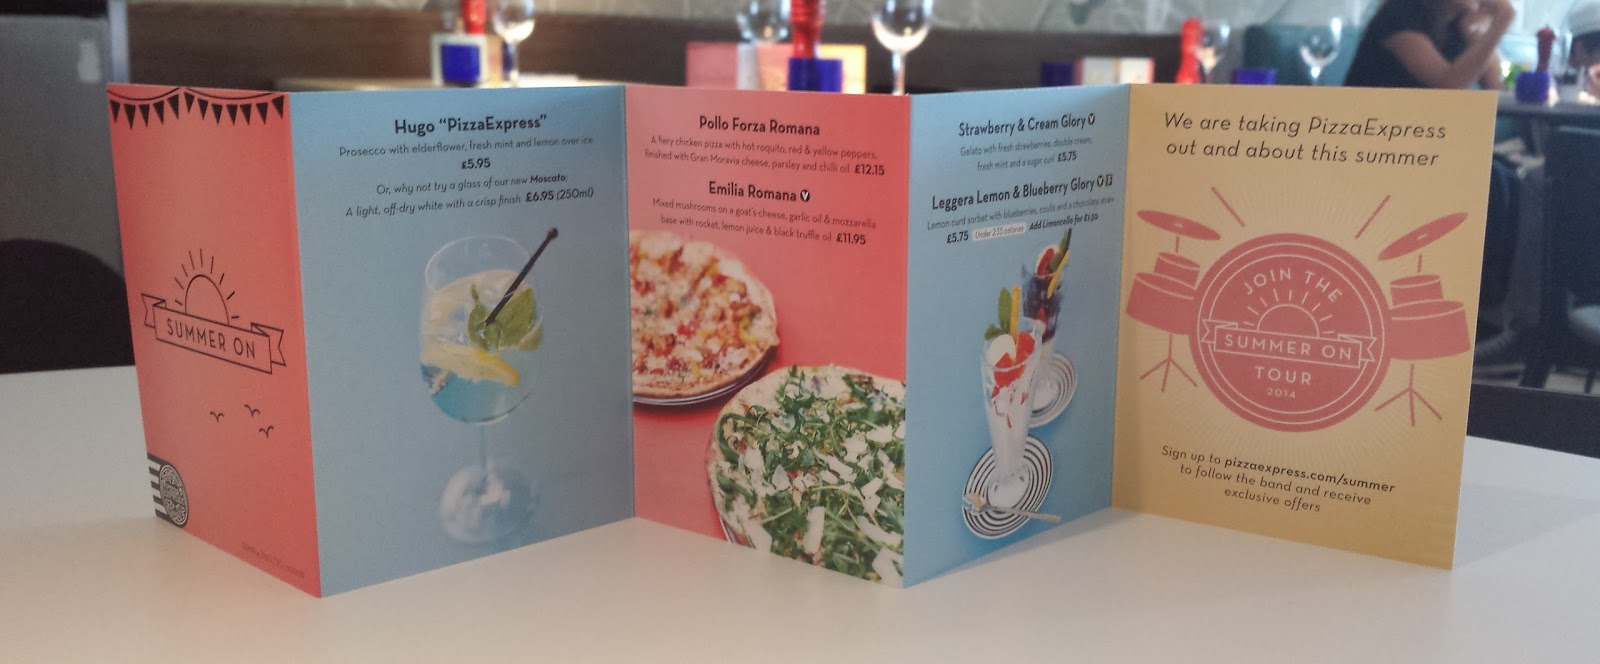 Lifestyle New Summer Menu At Pizza Express South Woodford